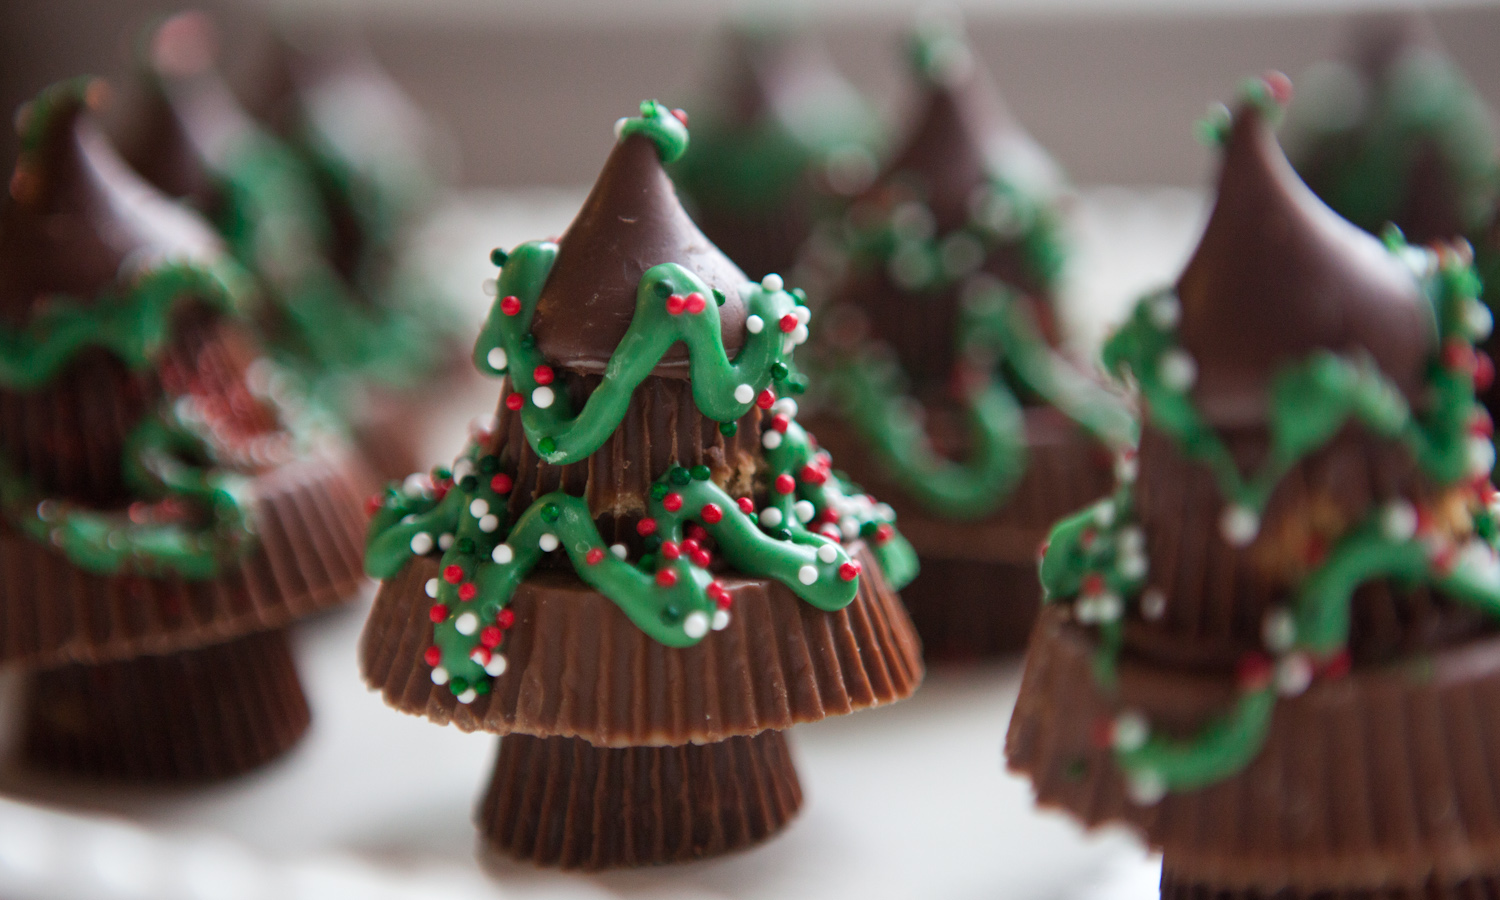 ... Hershey's Kisses and frosting. Registration begins Monday, December